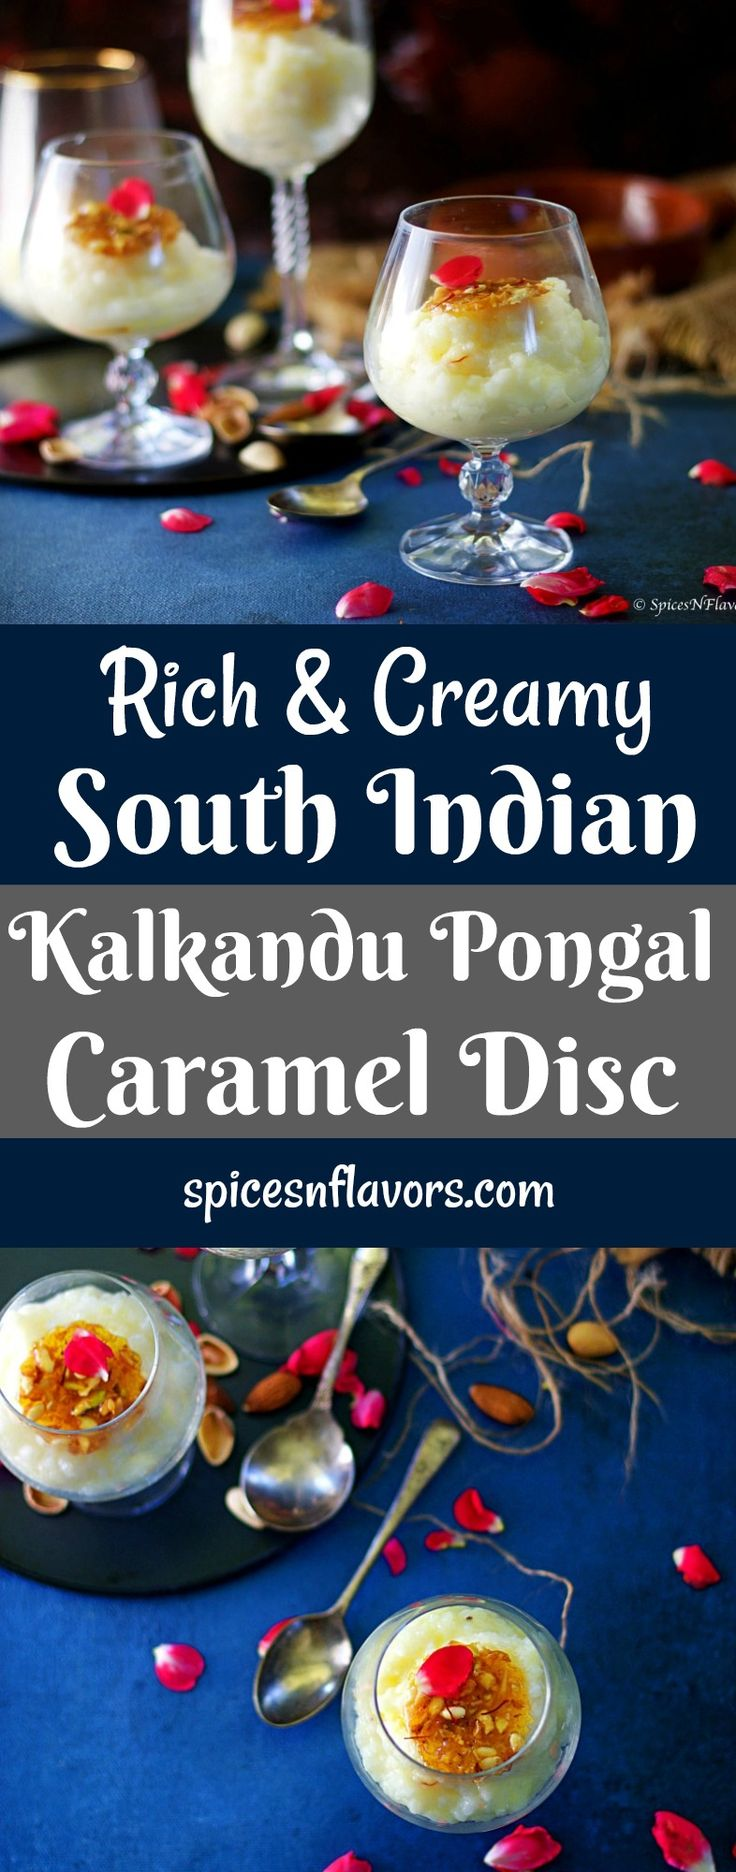 kalkandu pongal with caramel disc kalkandu pongal pongal sweet pongal indian festival recipes indian sweets traditional food authentic indian food indian sweet pongal recipes pongal photography